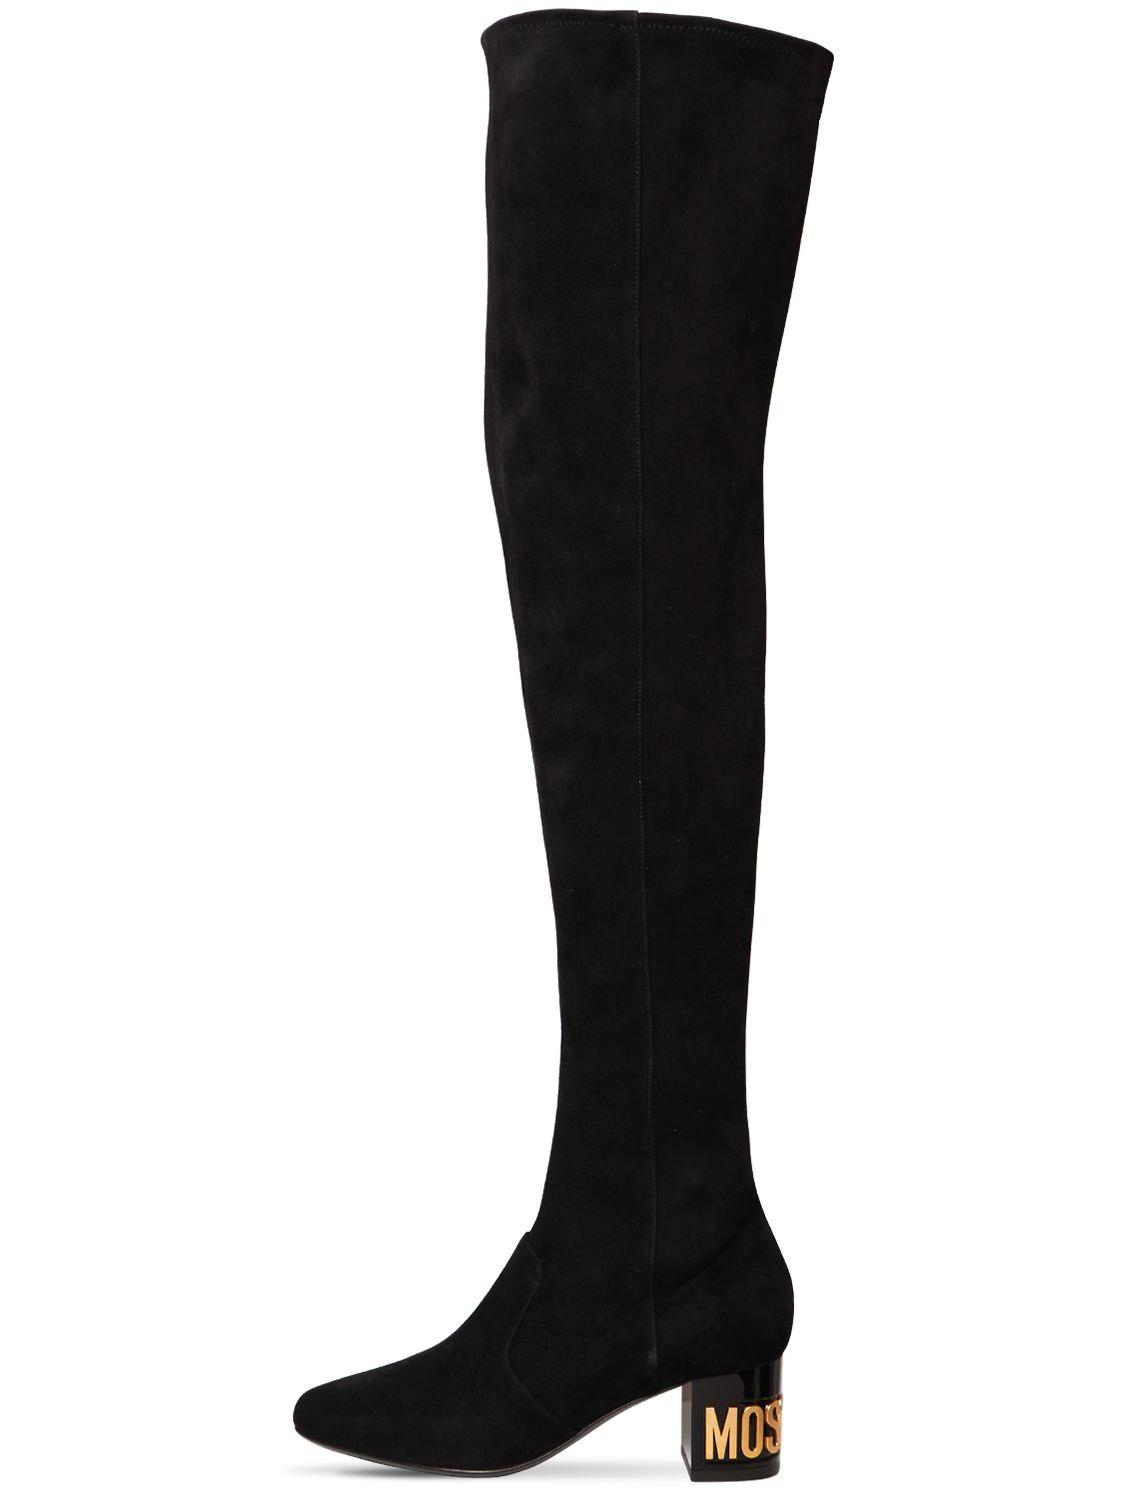 414b0fc1ec7 Moschino 50mm Logo Stretch Suede Boots in Black - Save 26% - Lyst